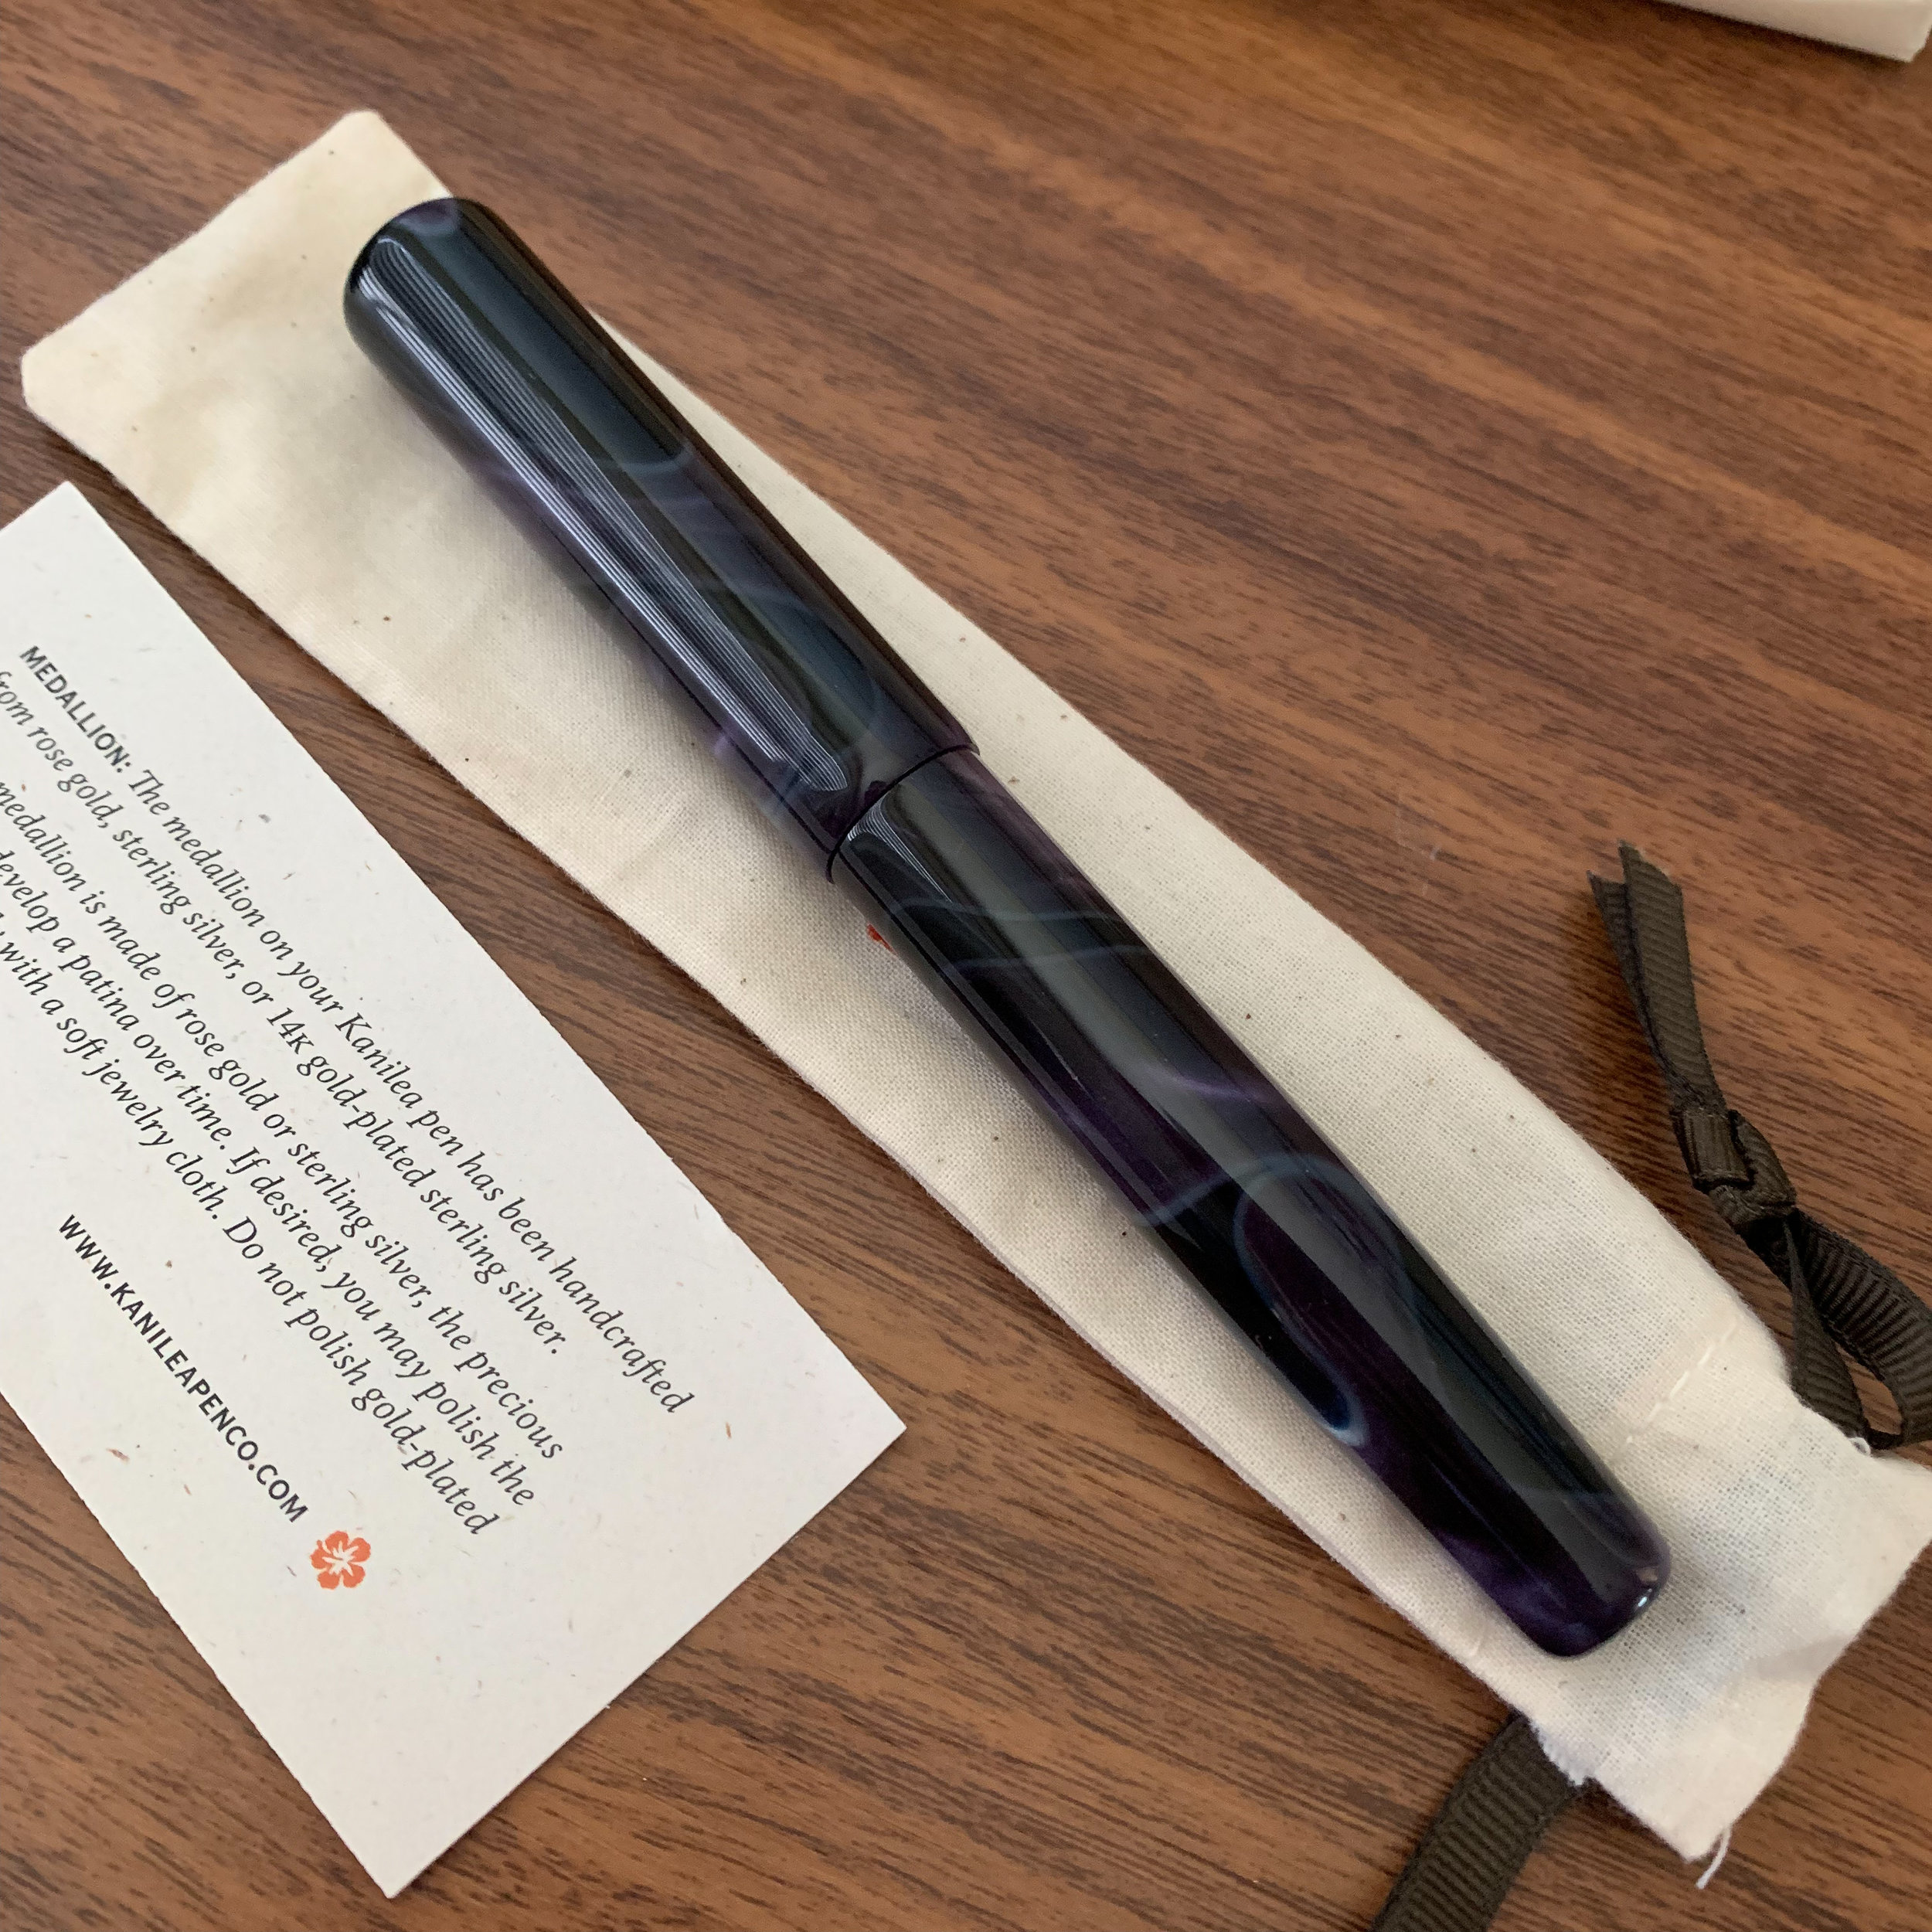 Because there are unique variations in the acrylic on each pen, I love choosing my Kanilea pens in person. If you look closely here, you will see that the swirls in the material are continuous. Kanilea uses a feature-matching process that transitions the color and design from cap to barrel.